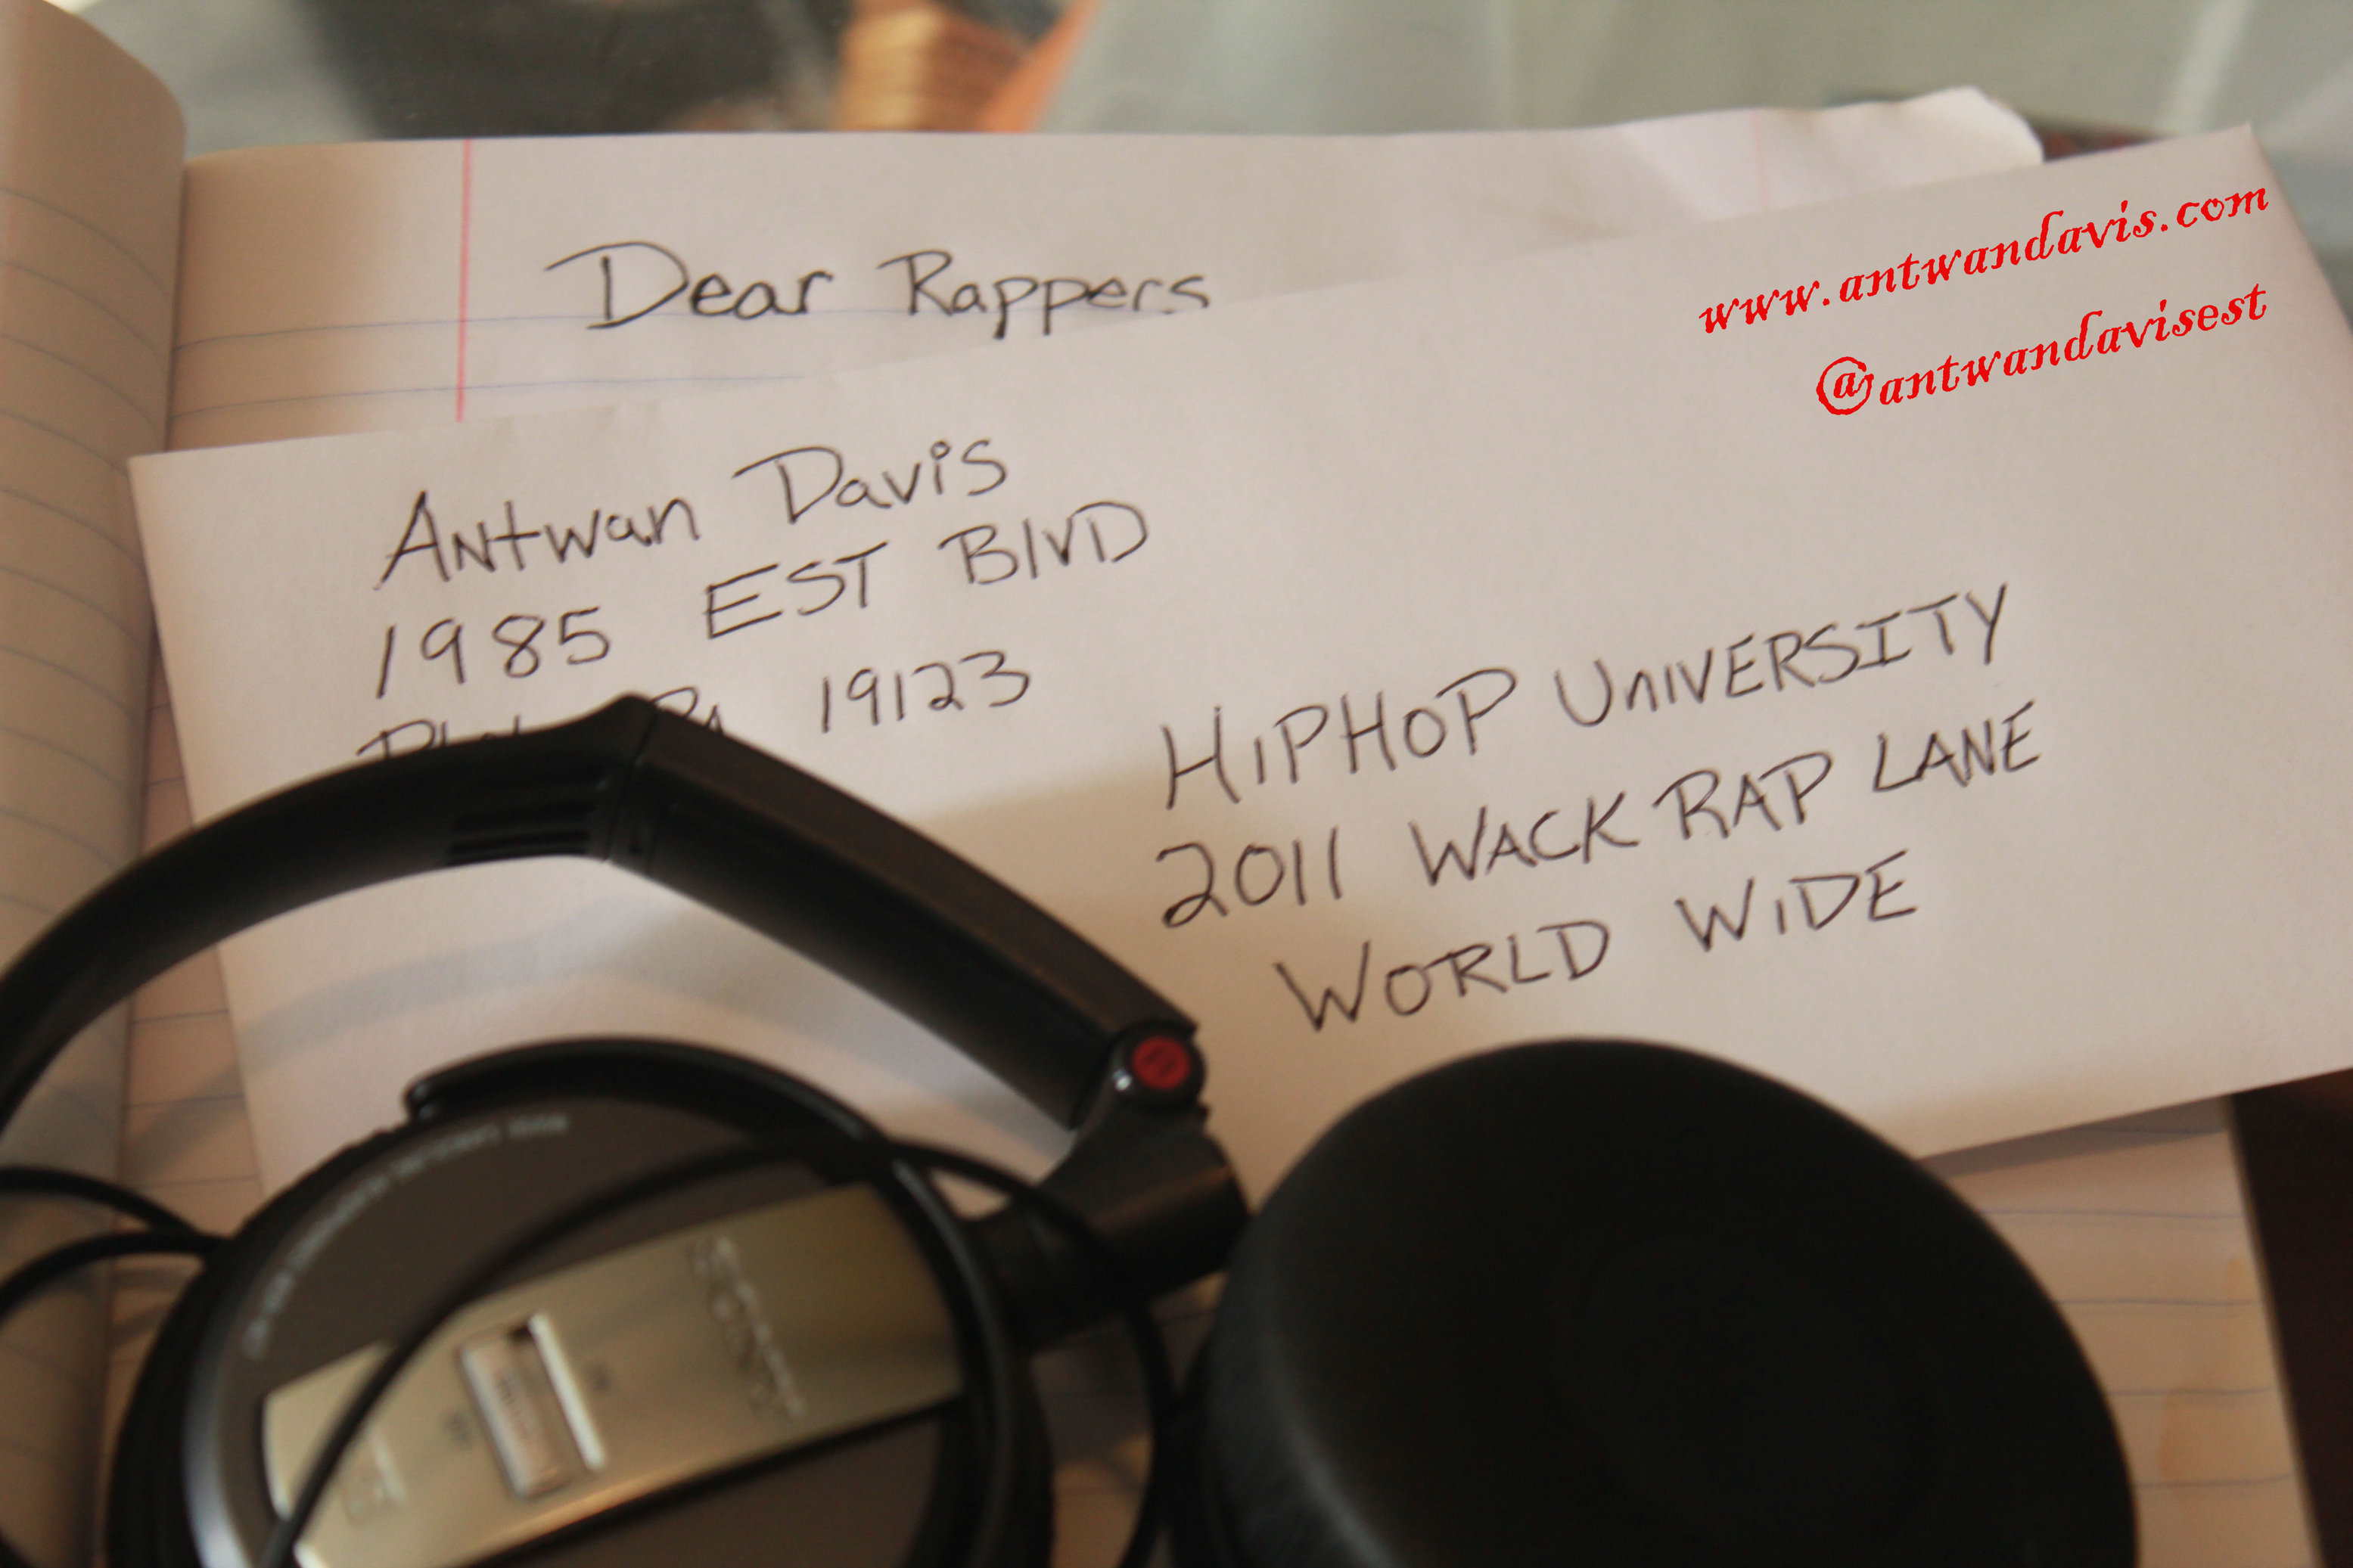 Antwan Davis (@AntwanDavisEST) &#8211; Dear Rappers